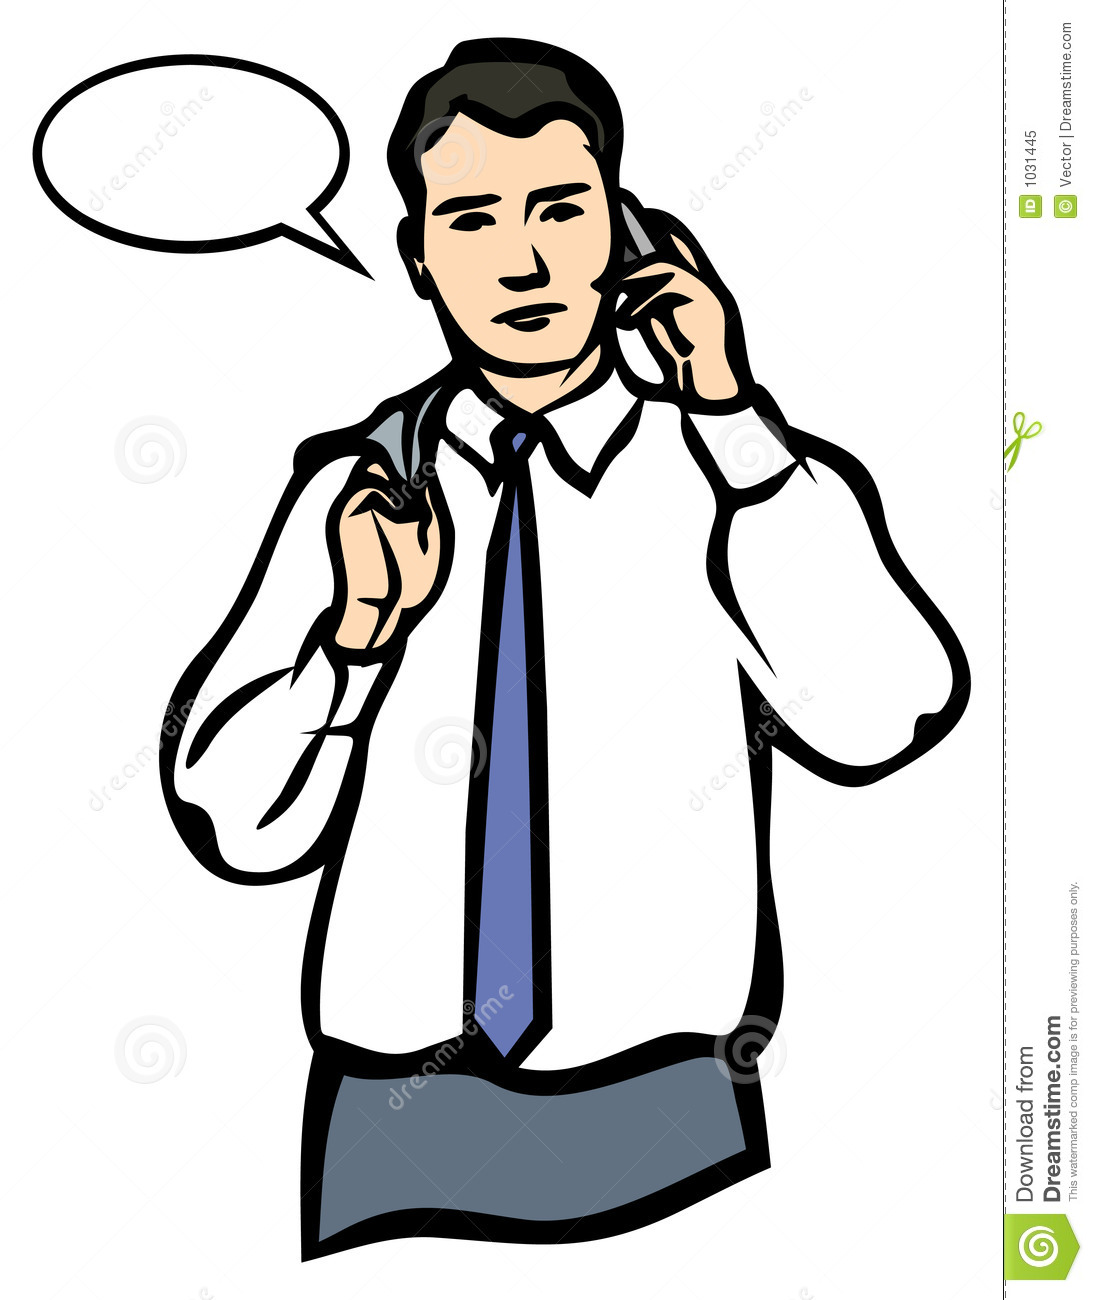 a man speaking on a mobile phone jpg and eps stock vector rh dreamstime com business person on phone clipart Person On Phone Icon